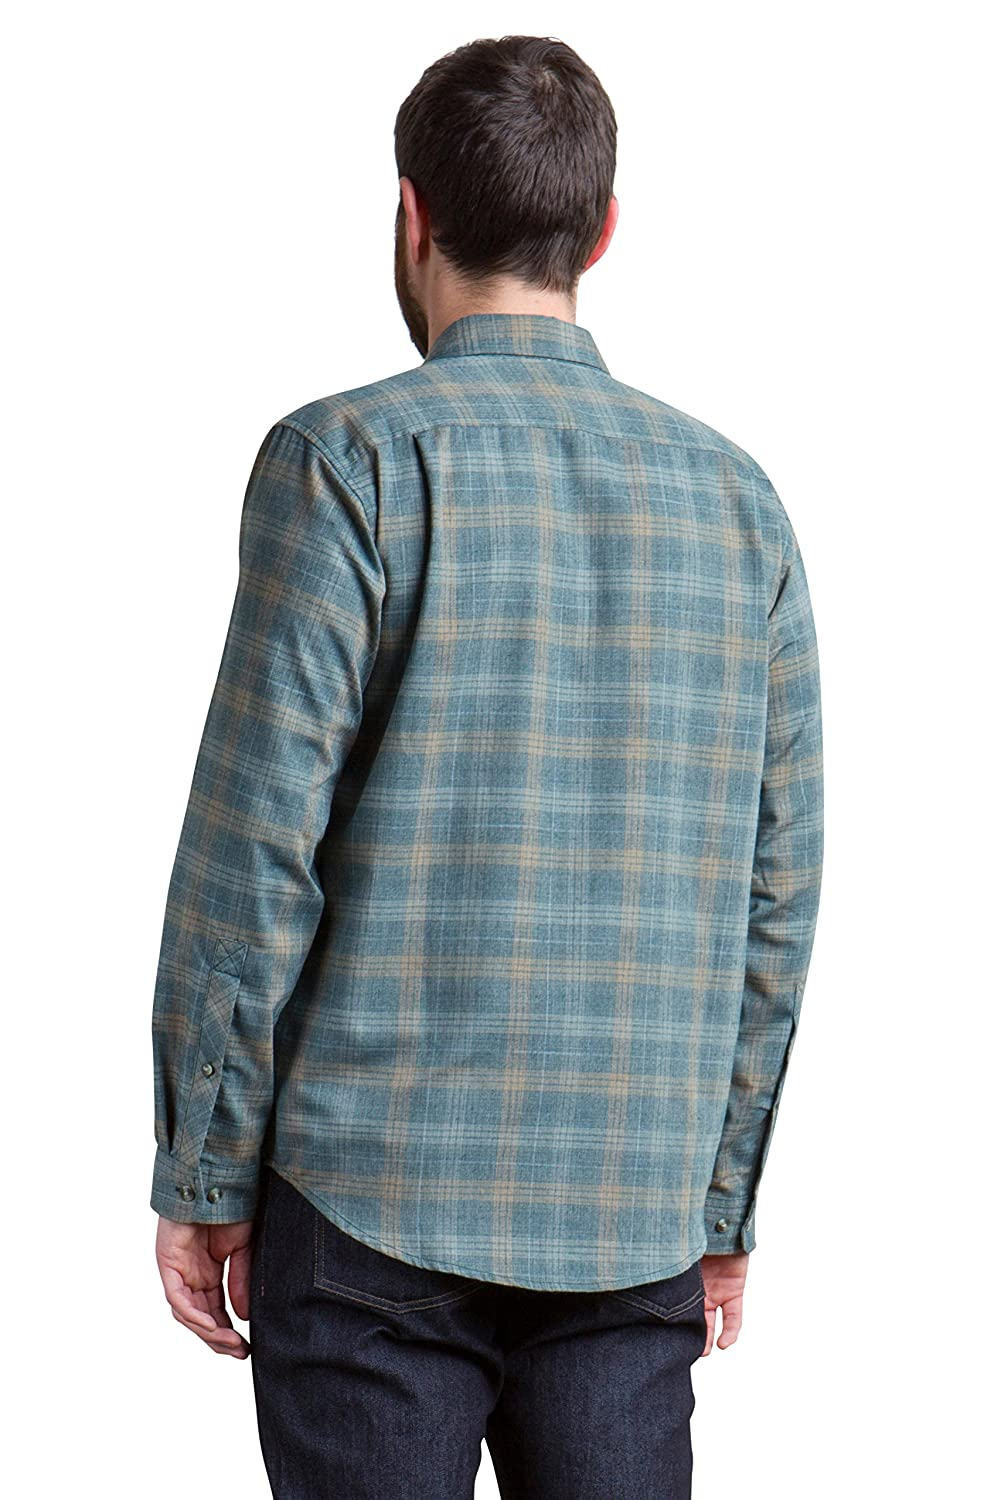 ExOfficio Mens Okanagan Macro Check Long Sleeve Shirt